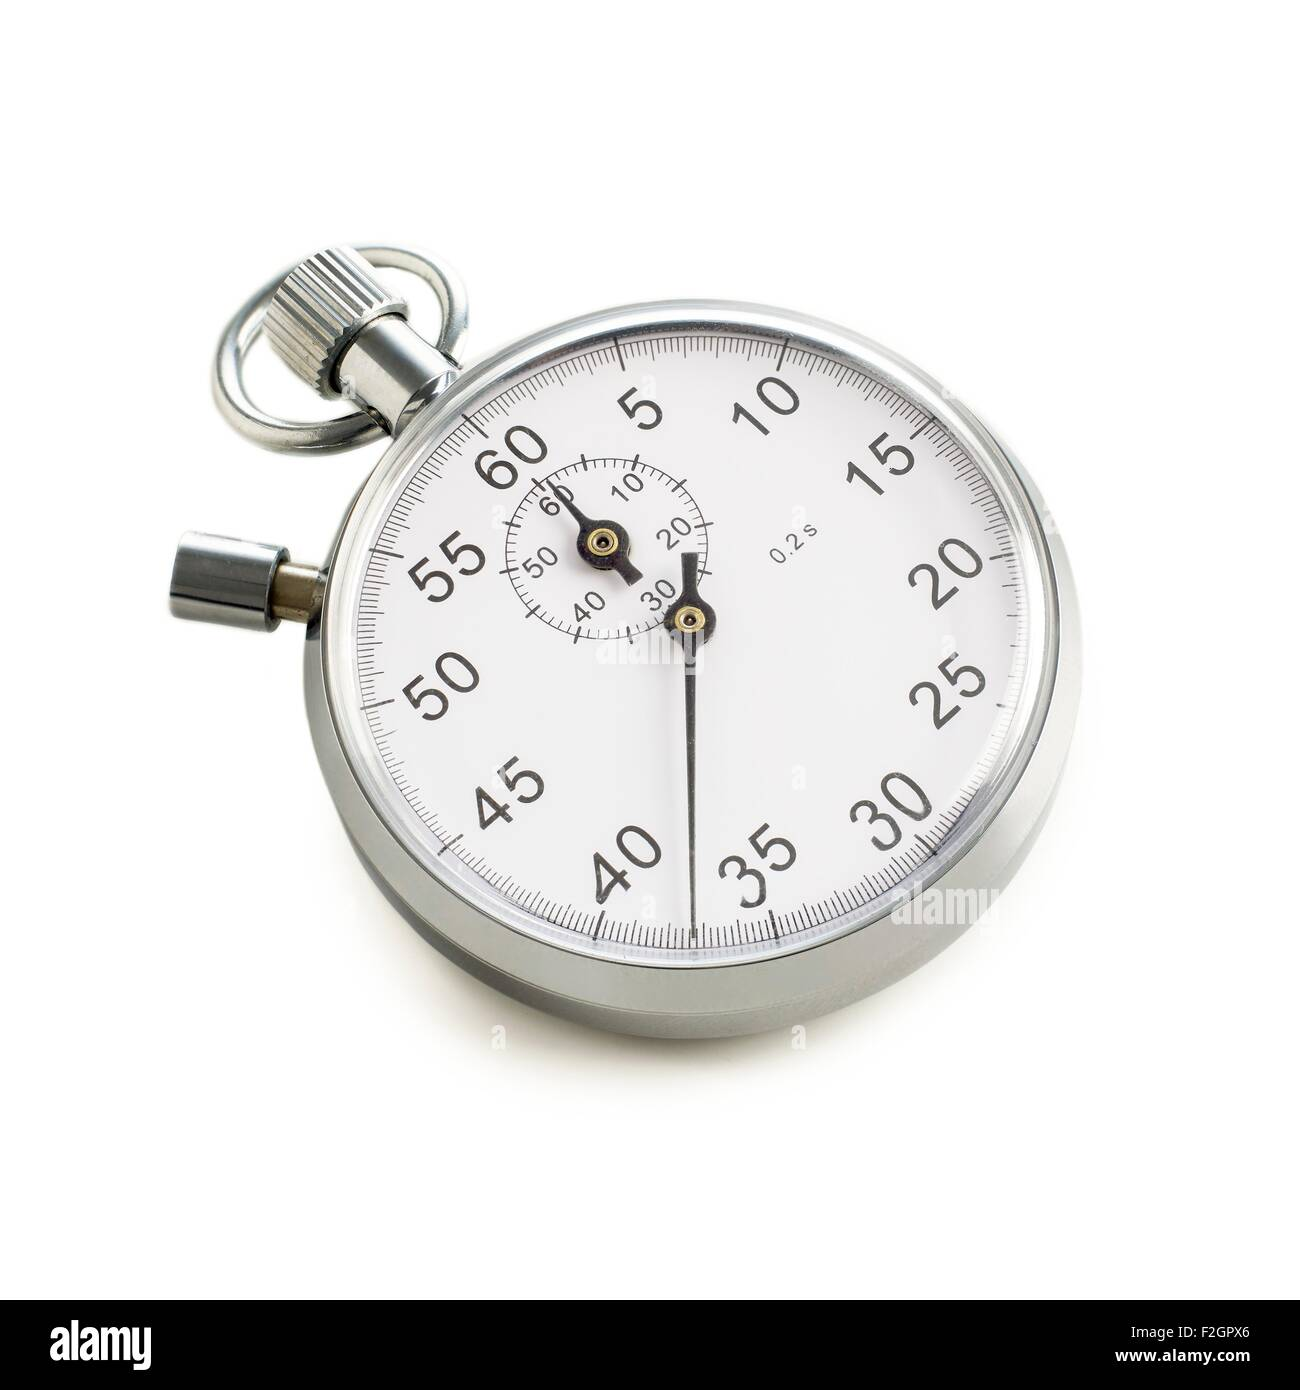 Stopwatch Stock Photos & Stopwatch Stock Images - Alamy